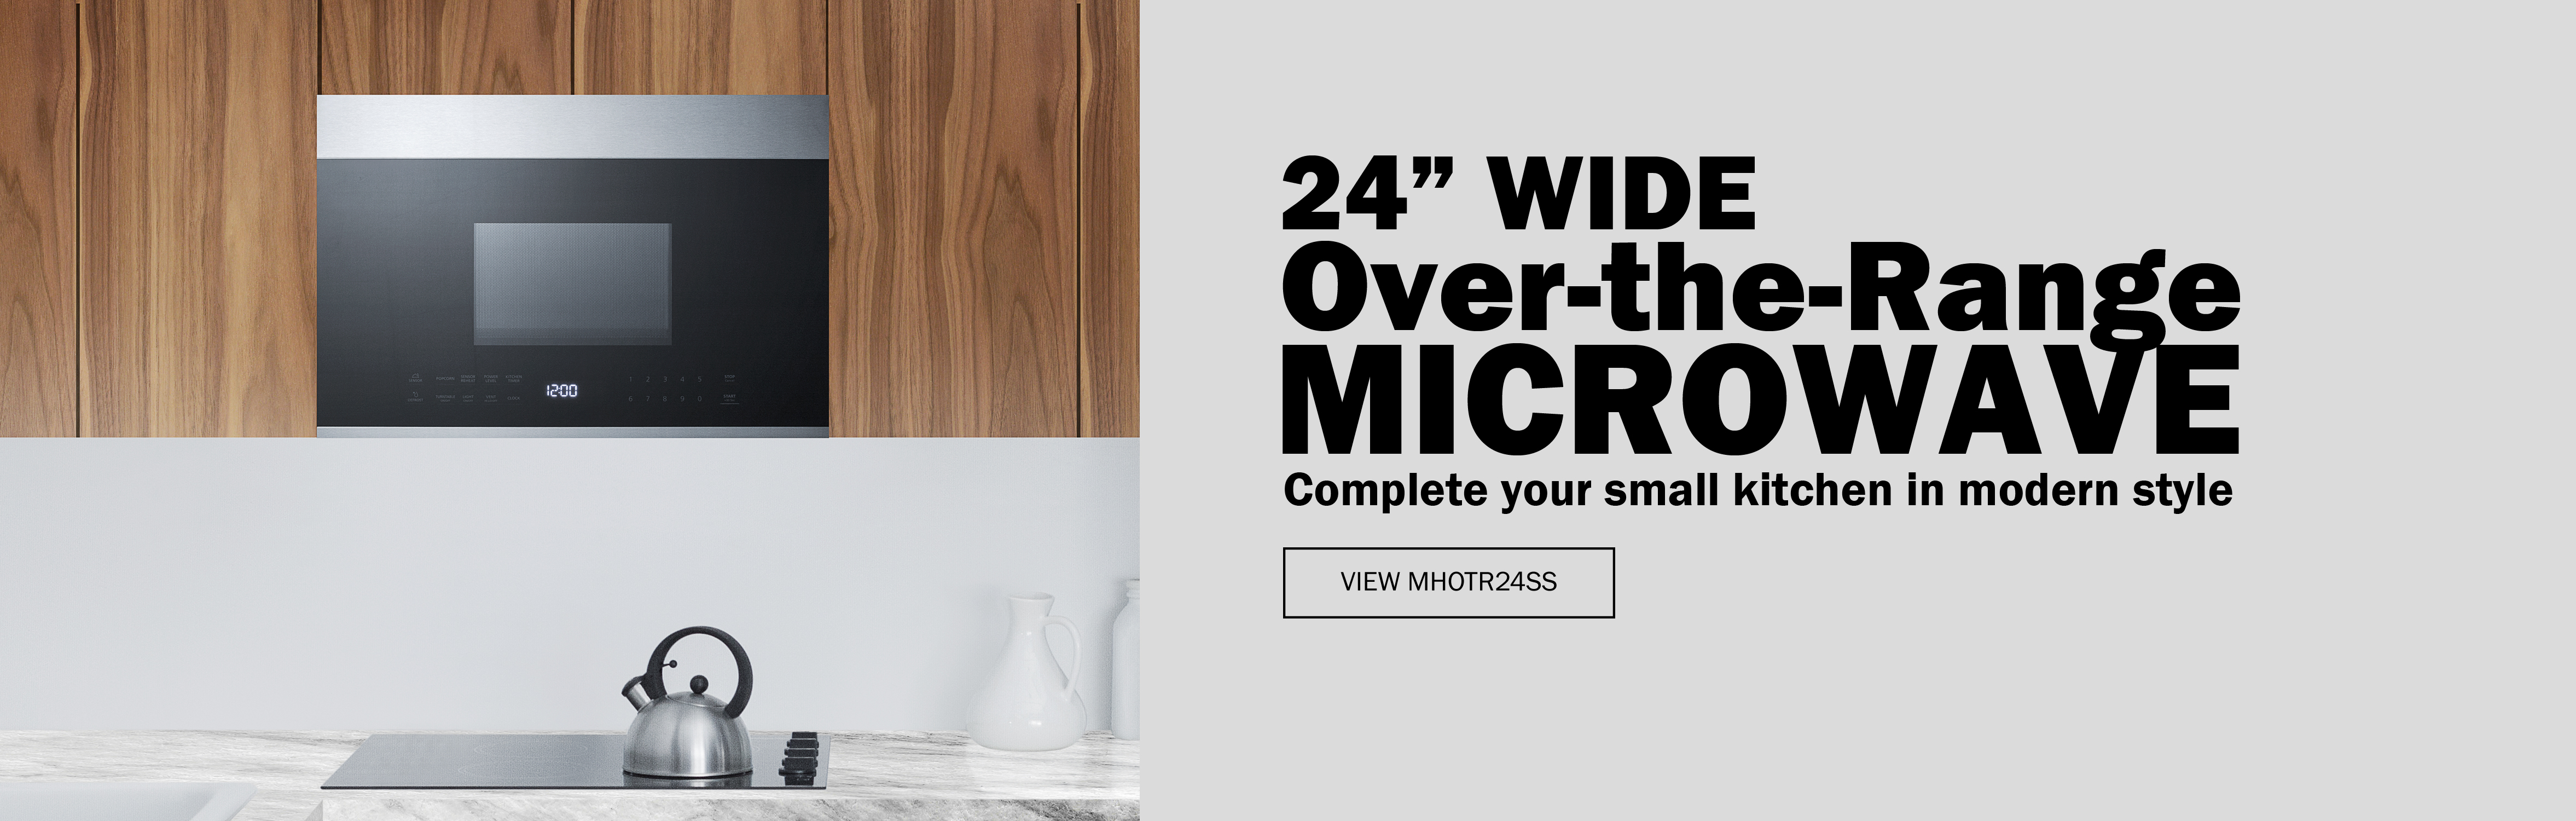 24 Inch Wide Over-the-range Microwave